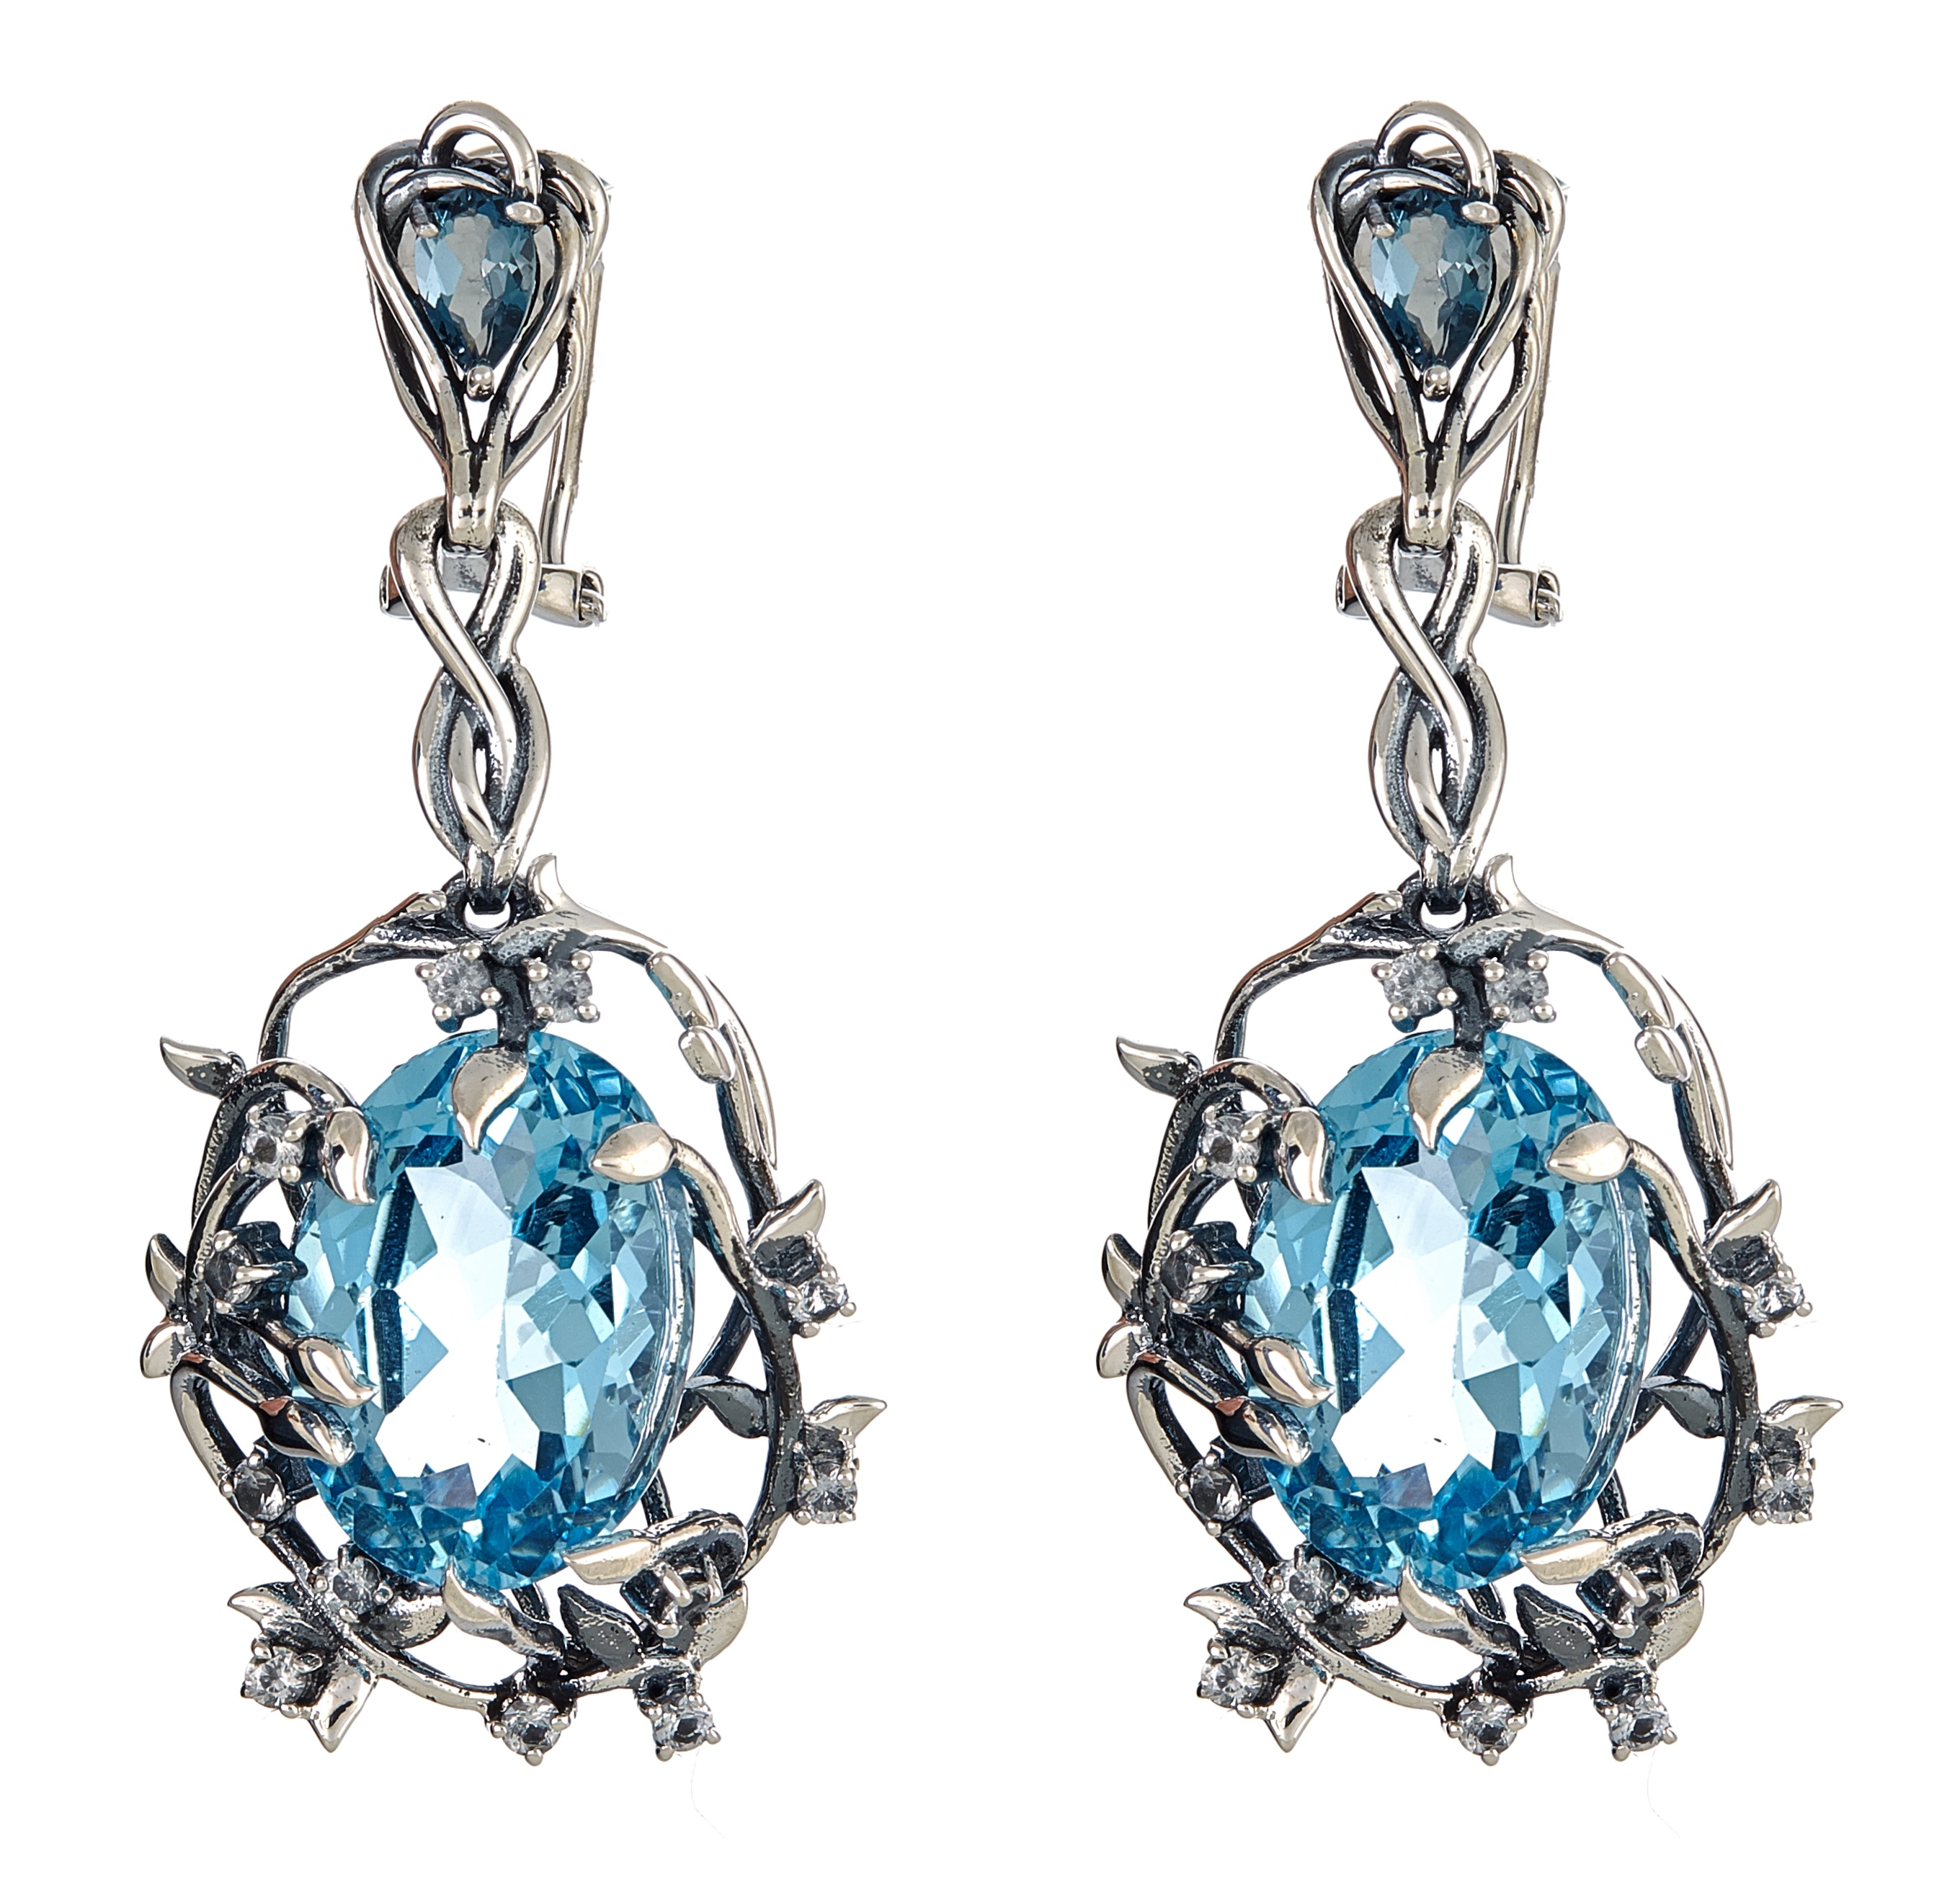 Cristina Sabatini Iris Blossom earrings | JCK On Your Market